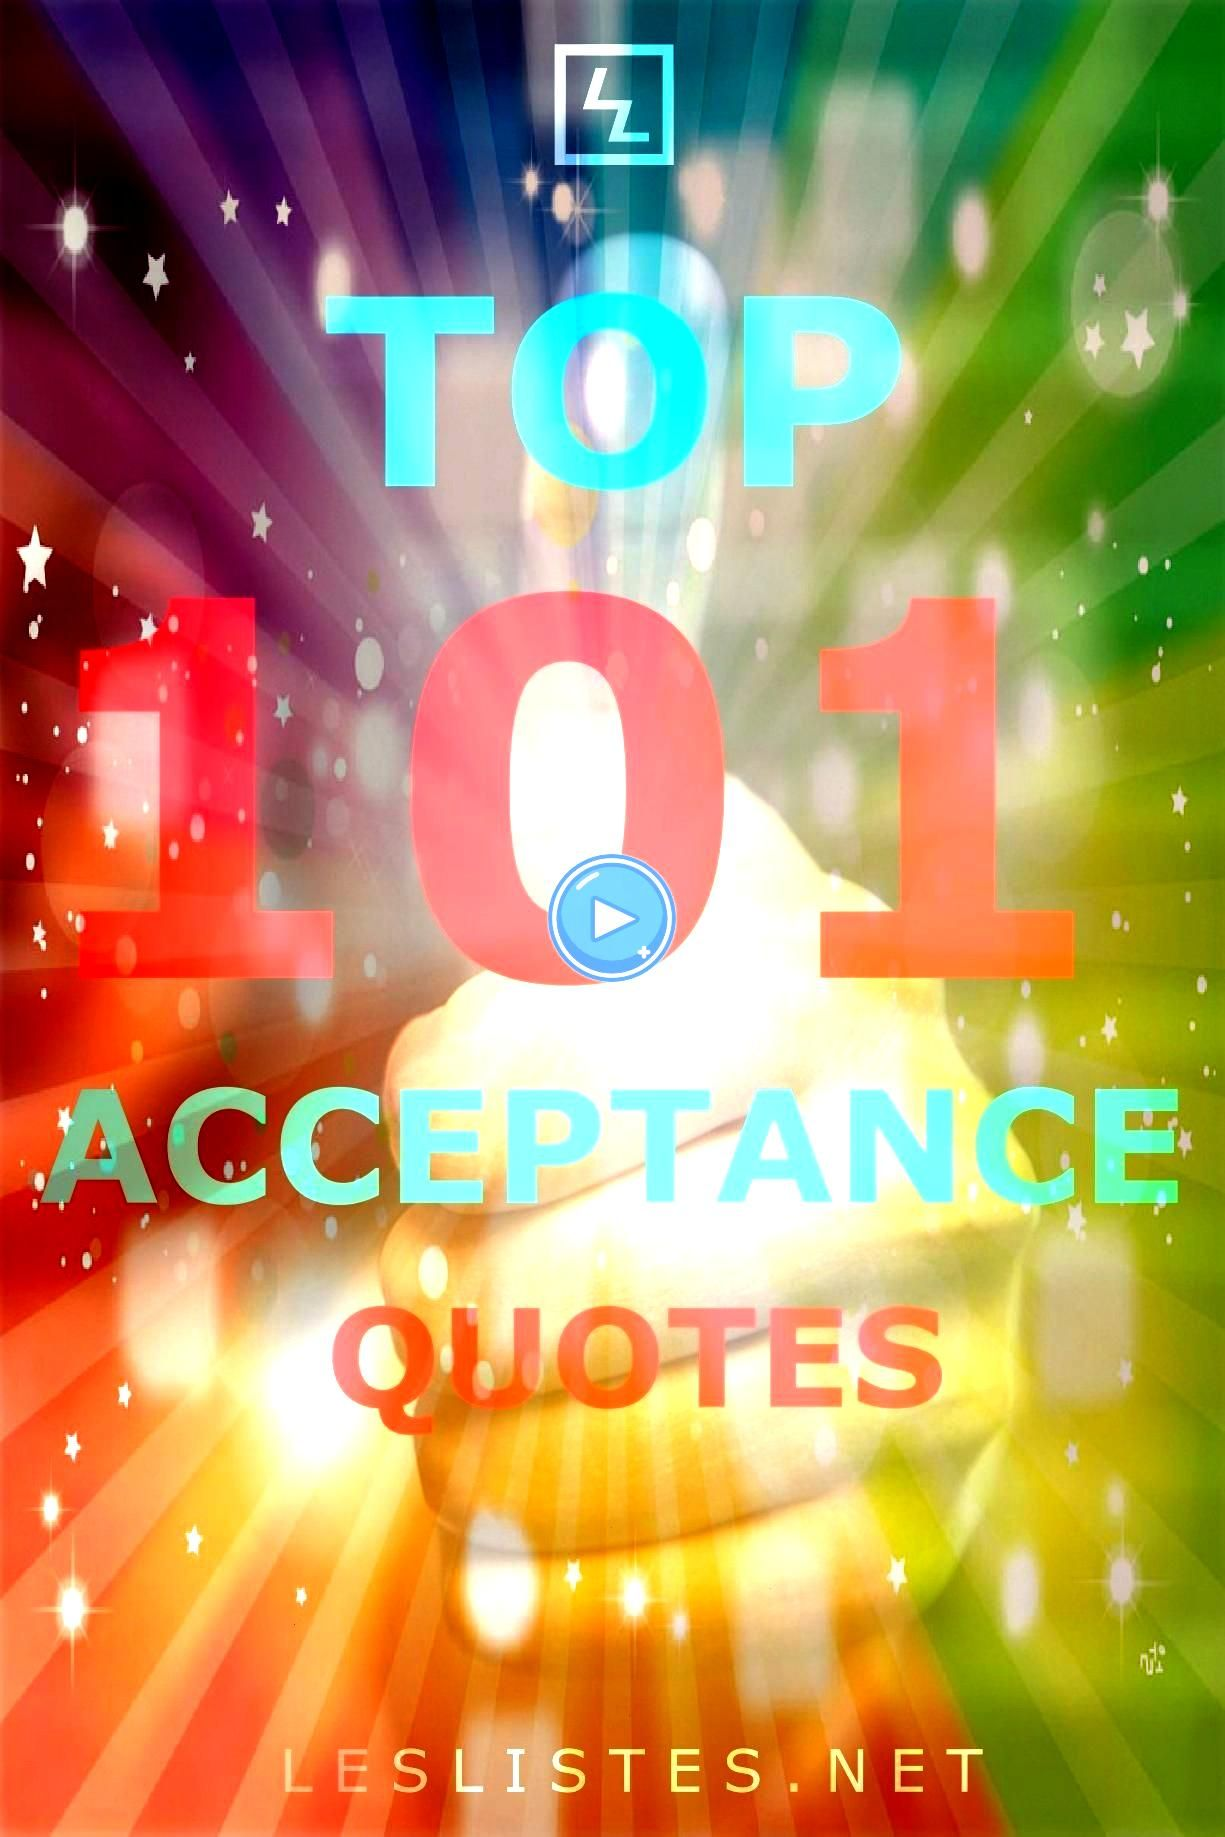 not always the easiest thing to do With that in mind check out the top 101 acceptance quotes you should knowAcceptance is not always the easiest thing to do With that in...